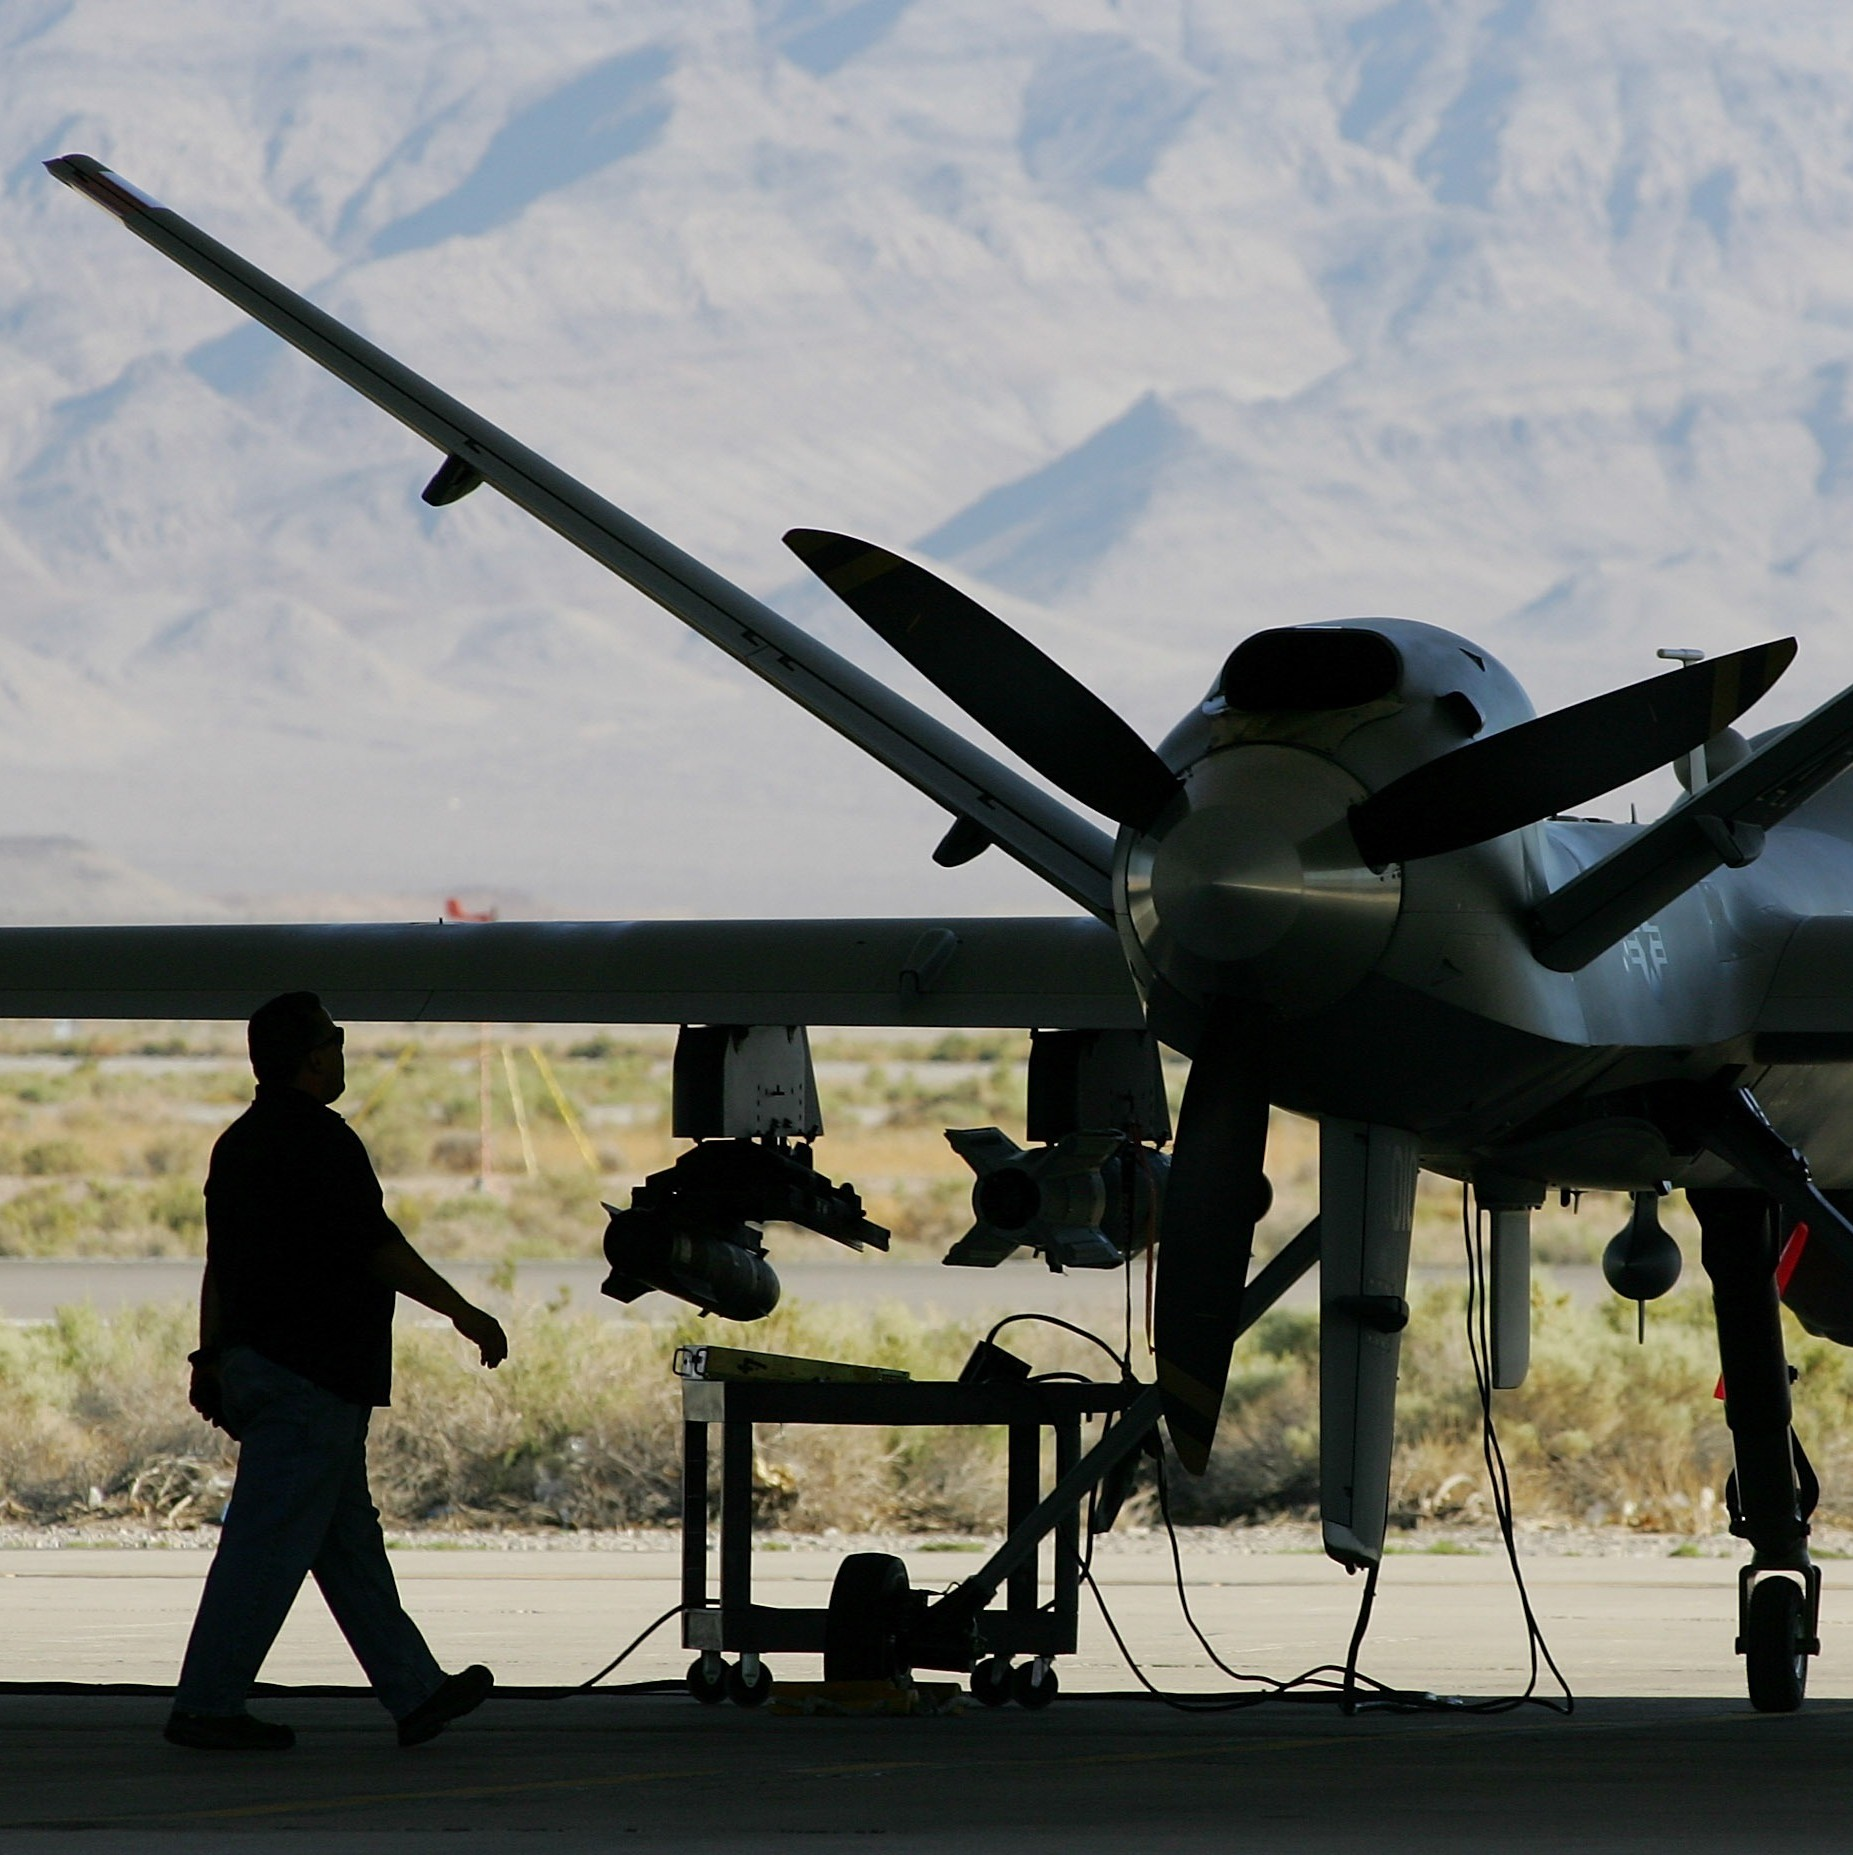 The US Has Issued New Rules For Foreign Sale Of Military Drones